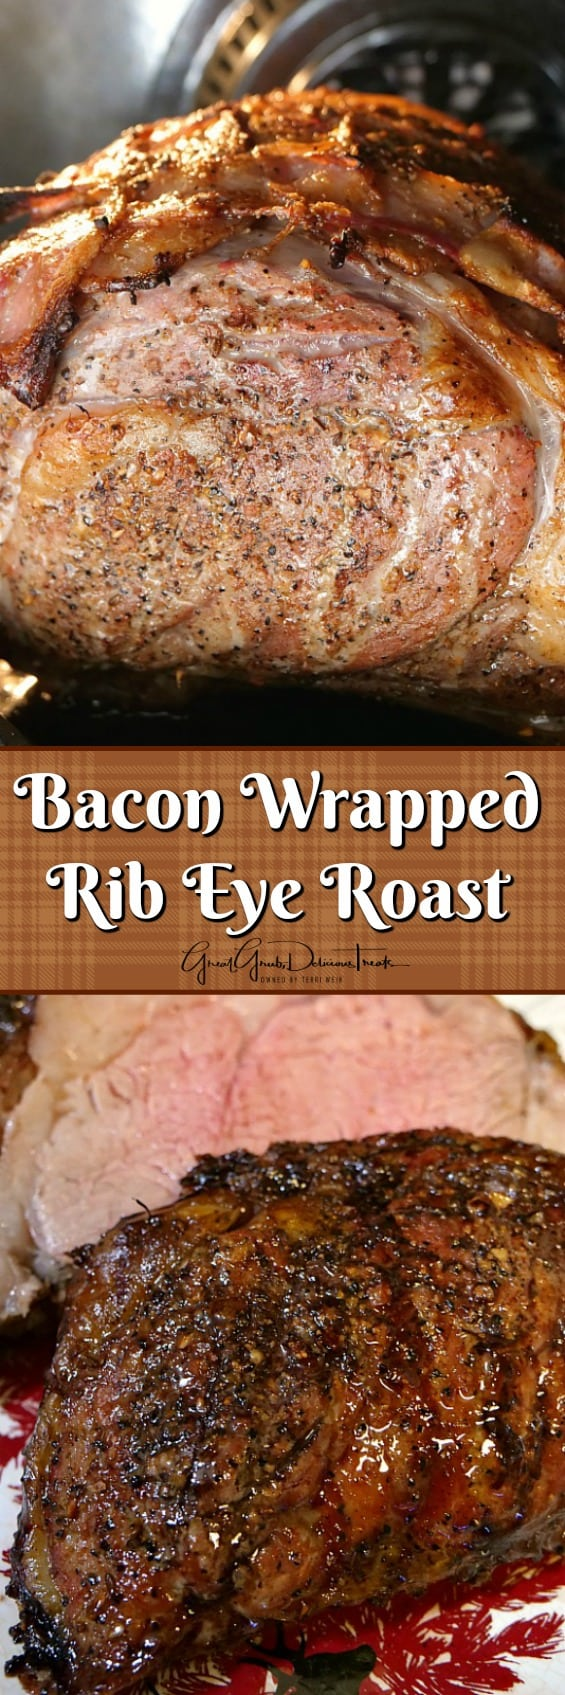 Bacon Wrapped Rib Eye Roast is wrapped with a bacon blanker and is the perfect roast for the holidays.